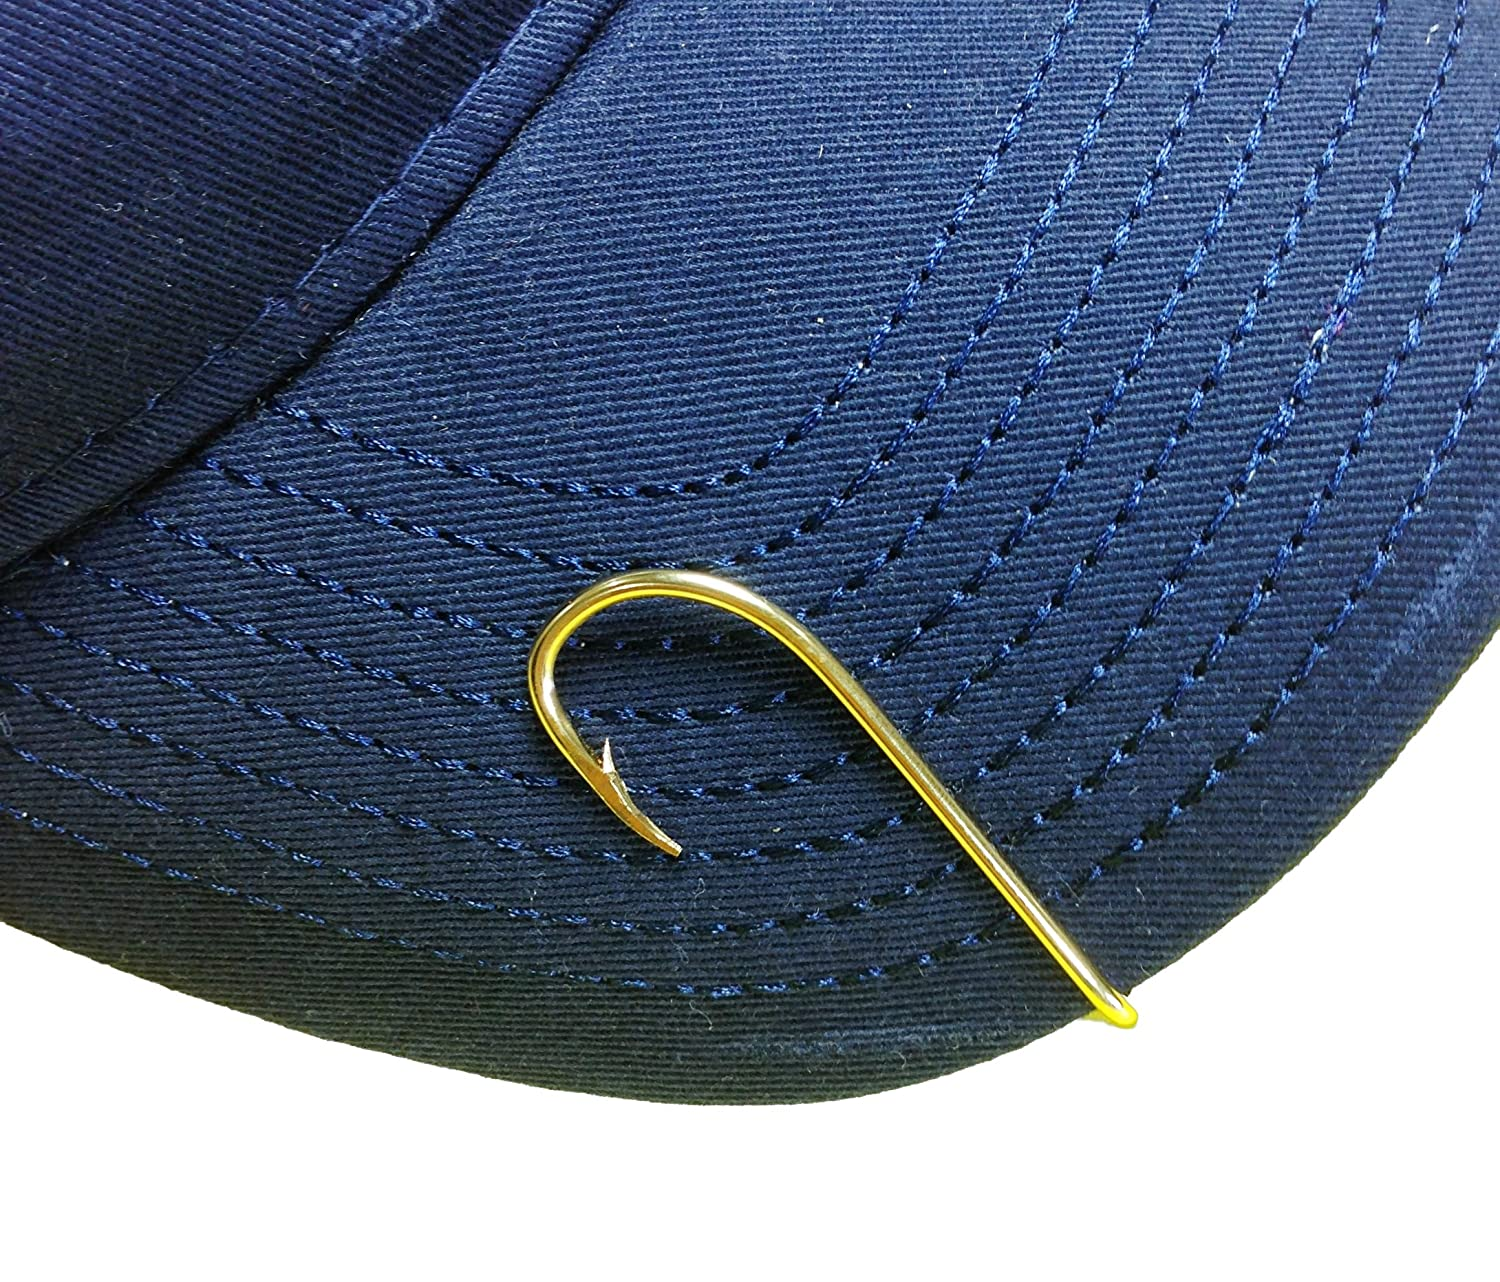 5 proven tips on how to wear a fish hook hat clip 4 is